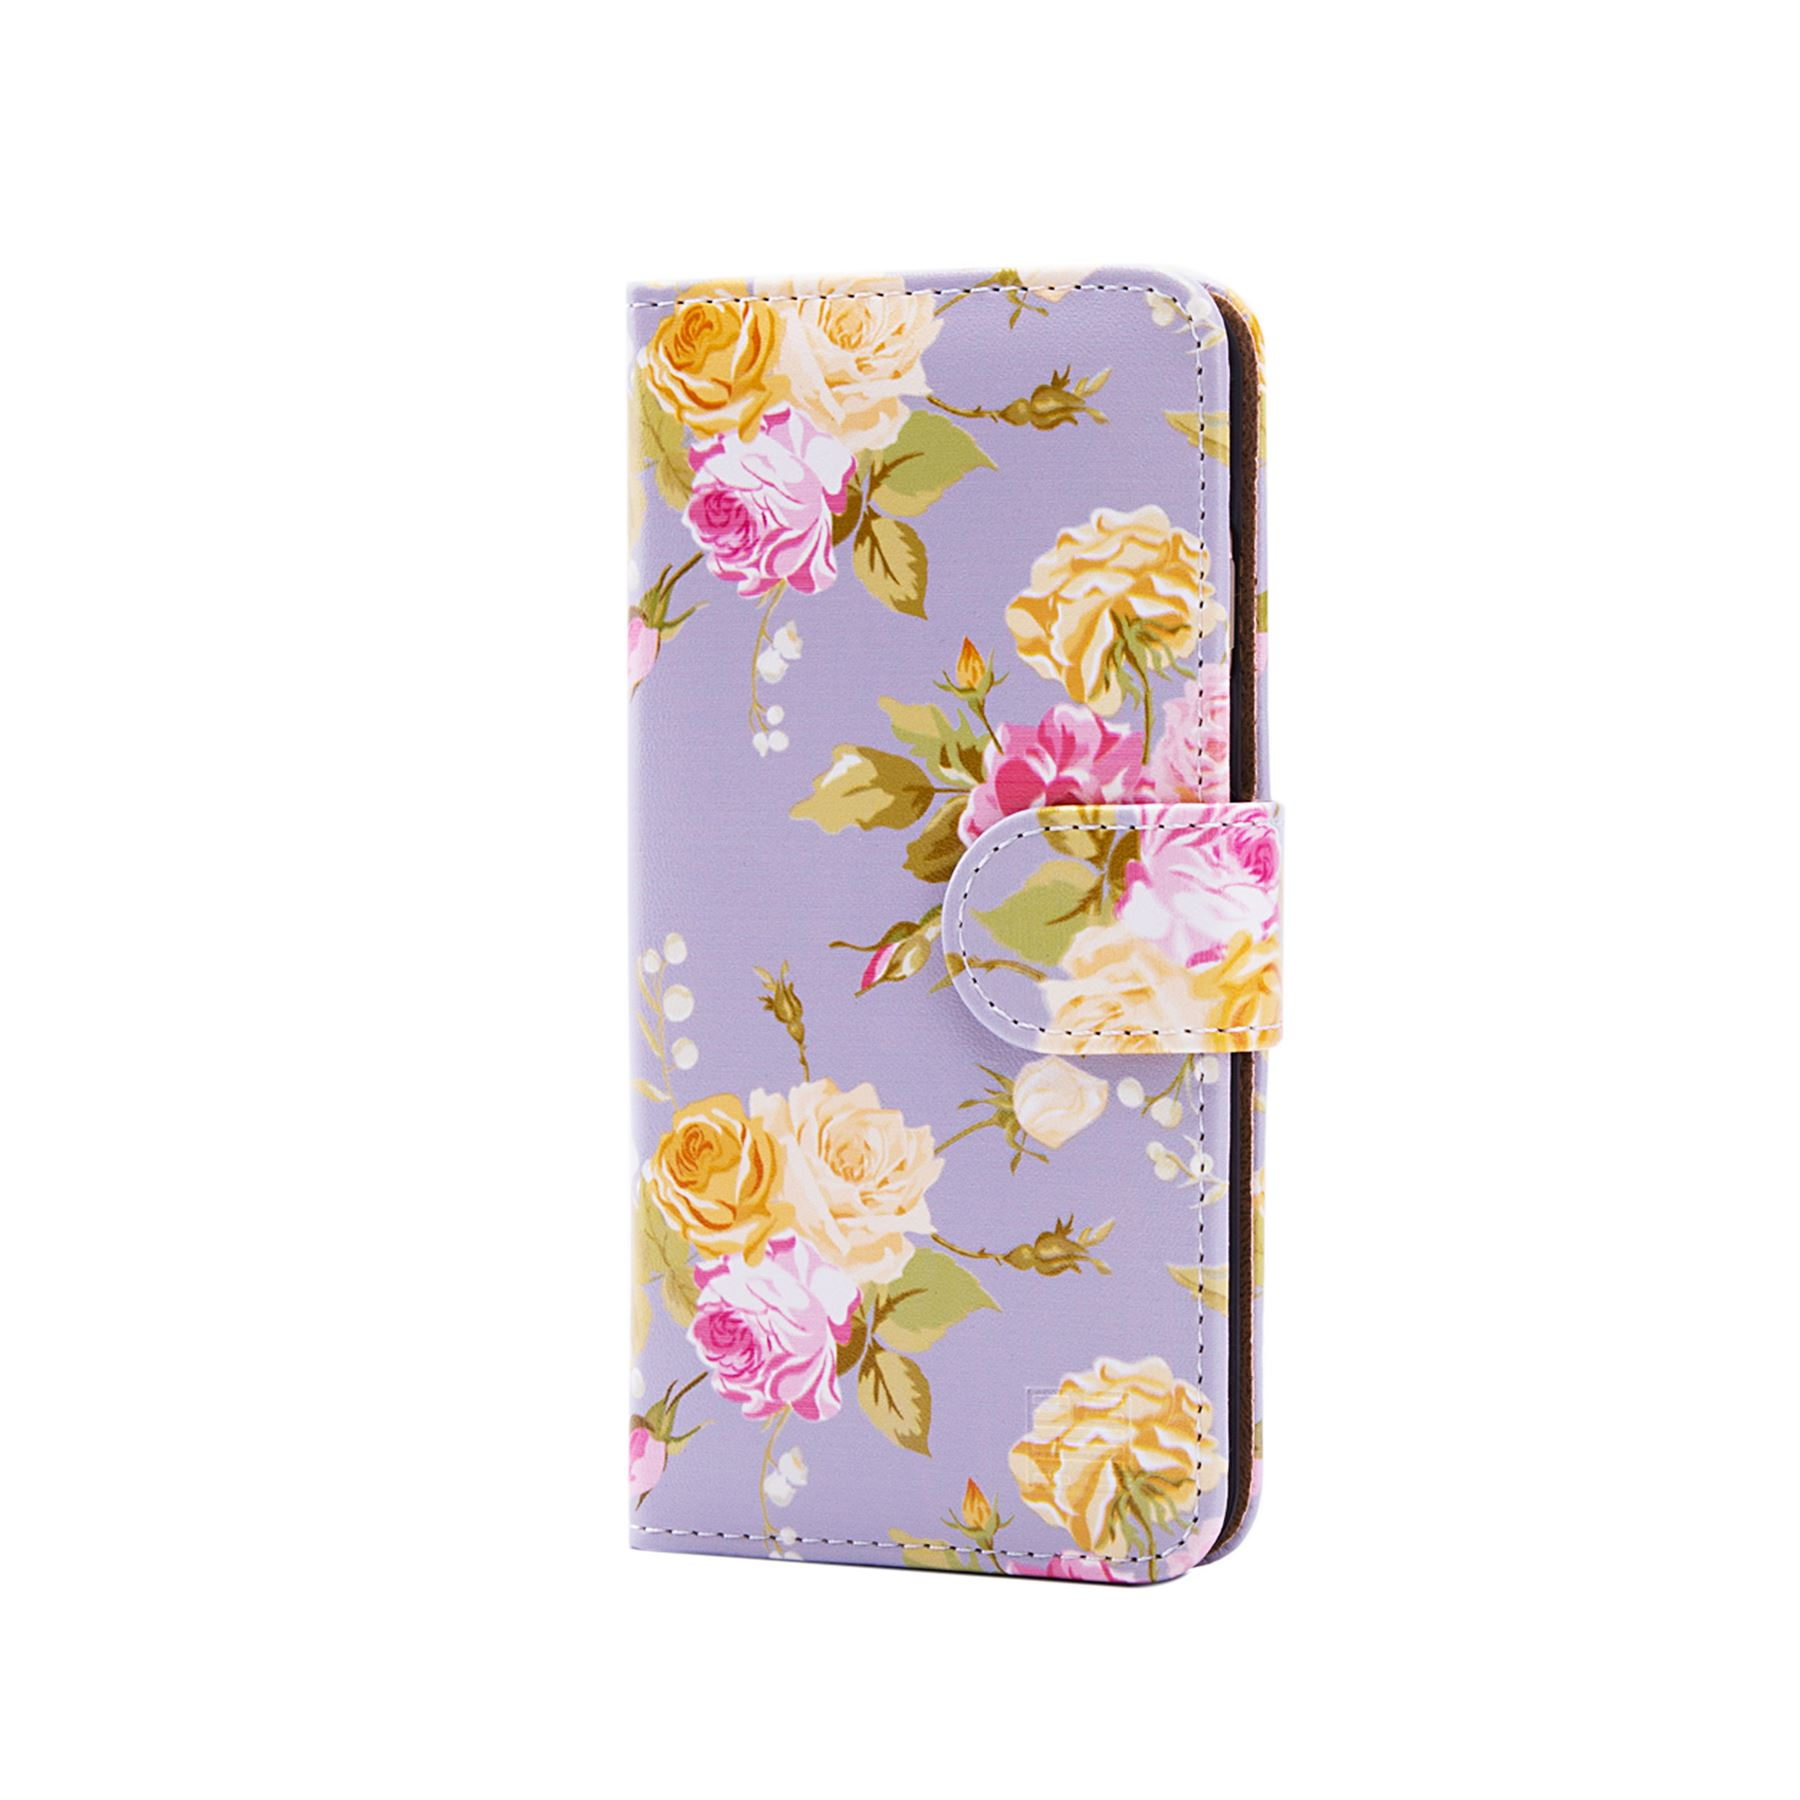 finest selection fb8d4 cb2d1 Details about PU Leather Floral Design Book Wallet Case Cover For Apple  iPhone 6 & 6S